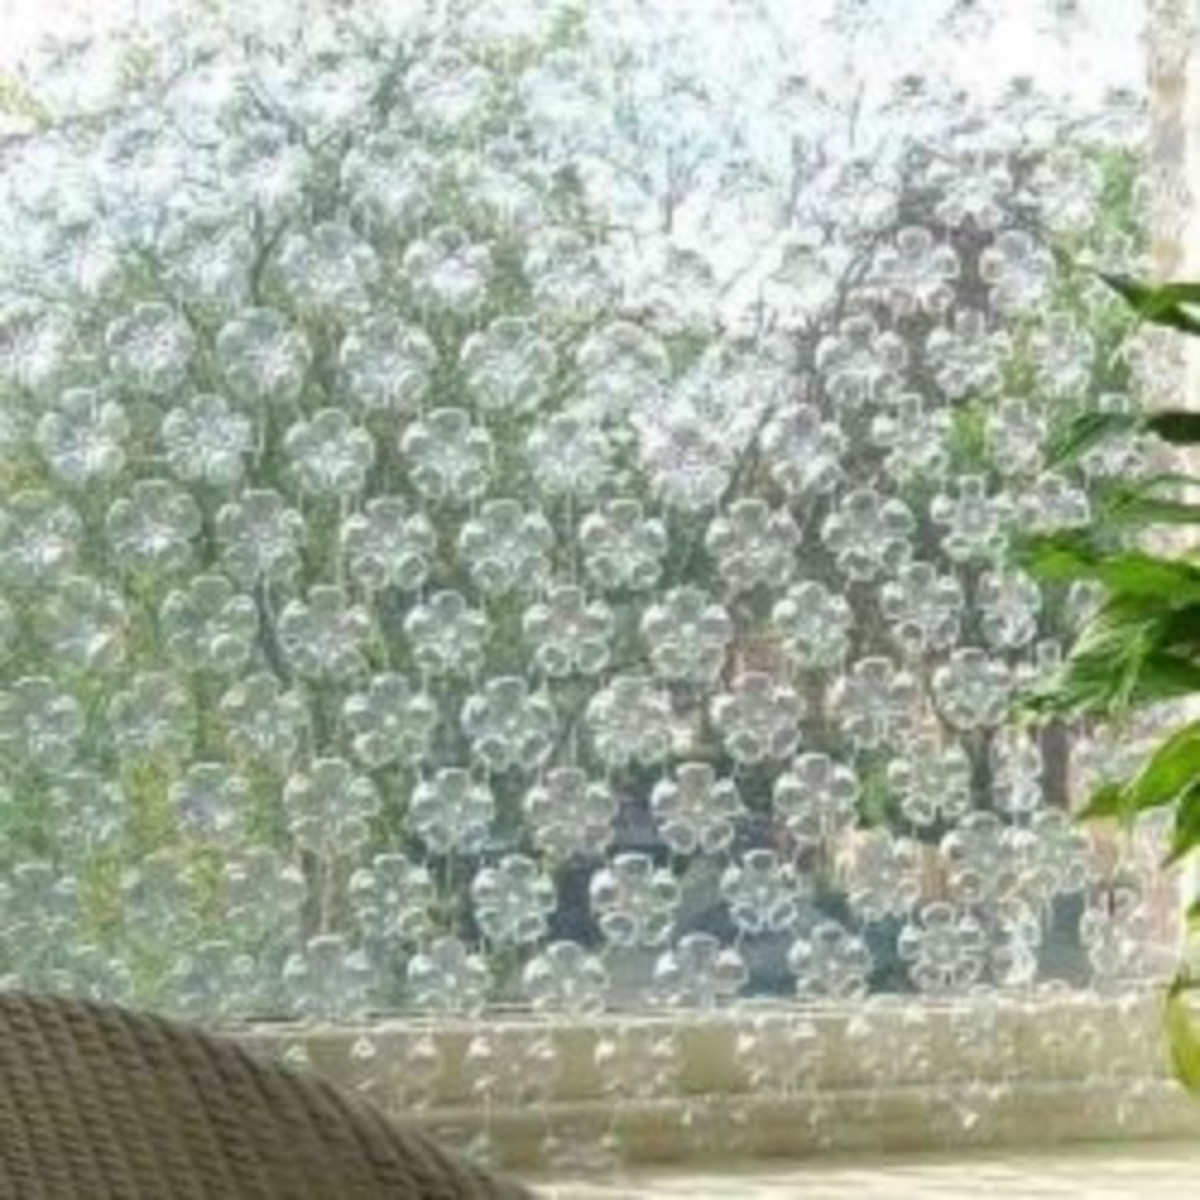 Plastic Bottles Reused as a Privacy Screen